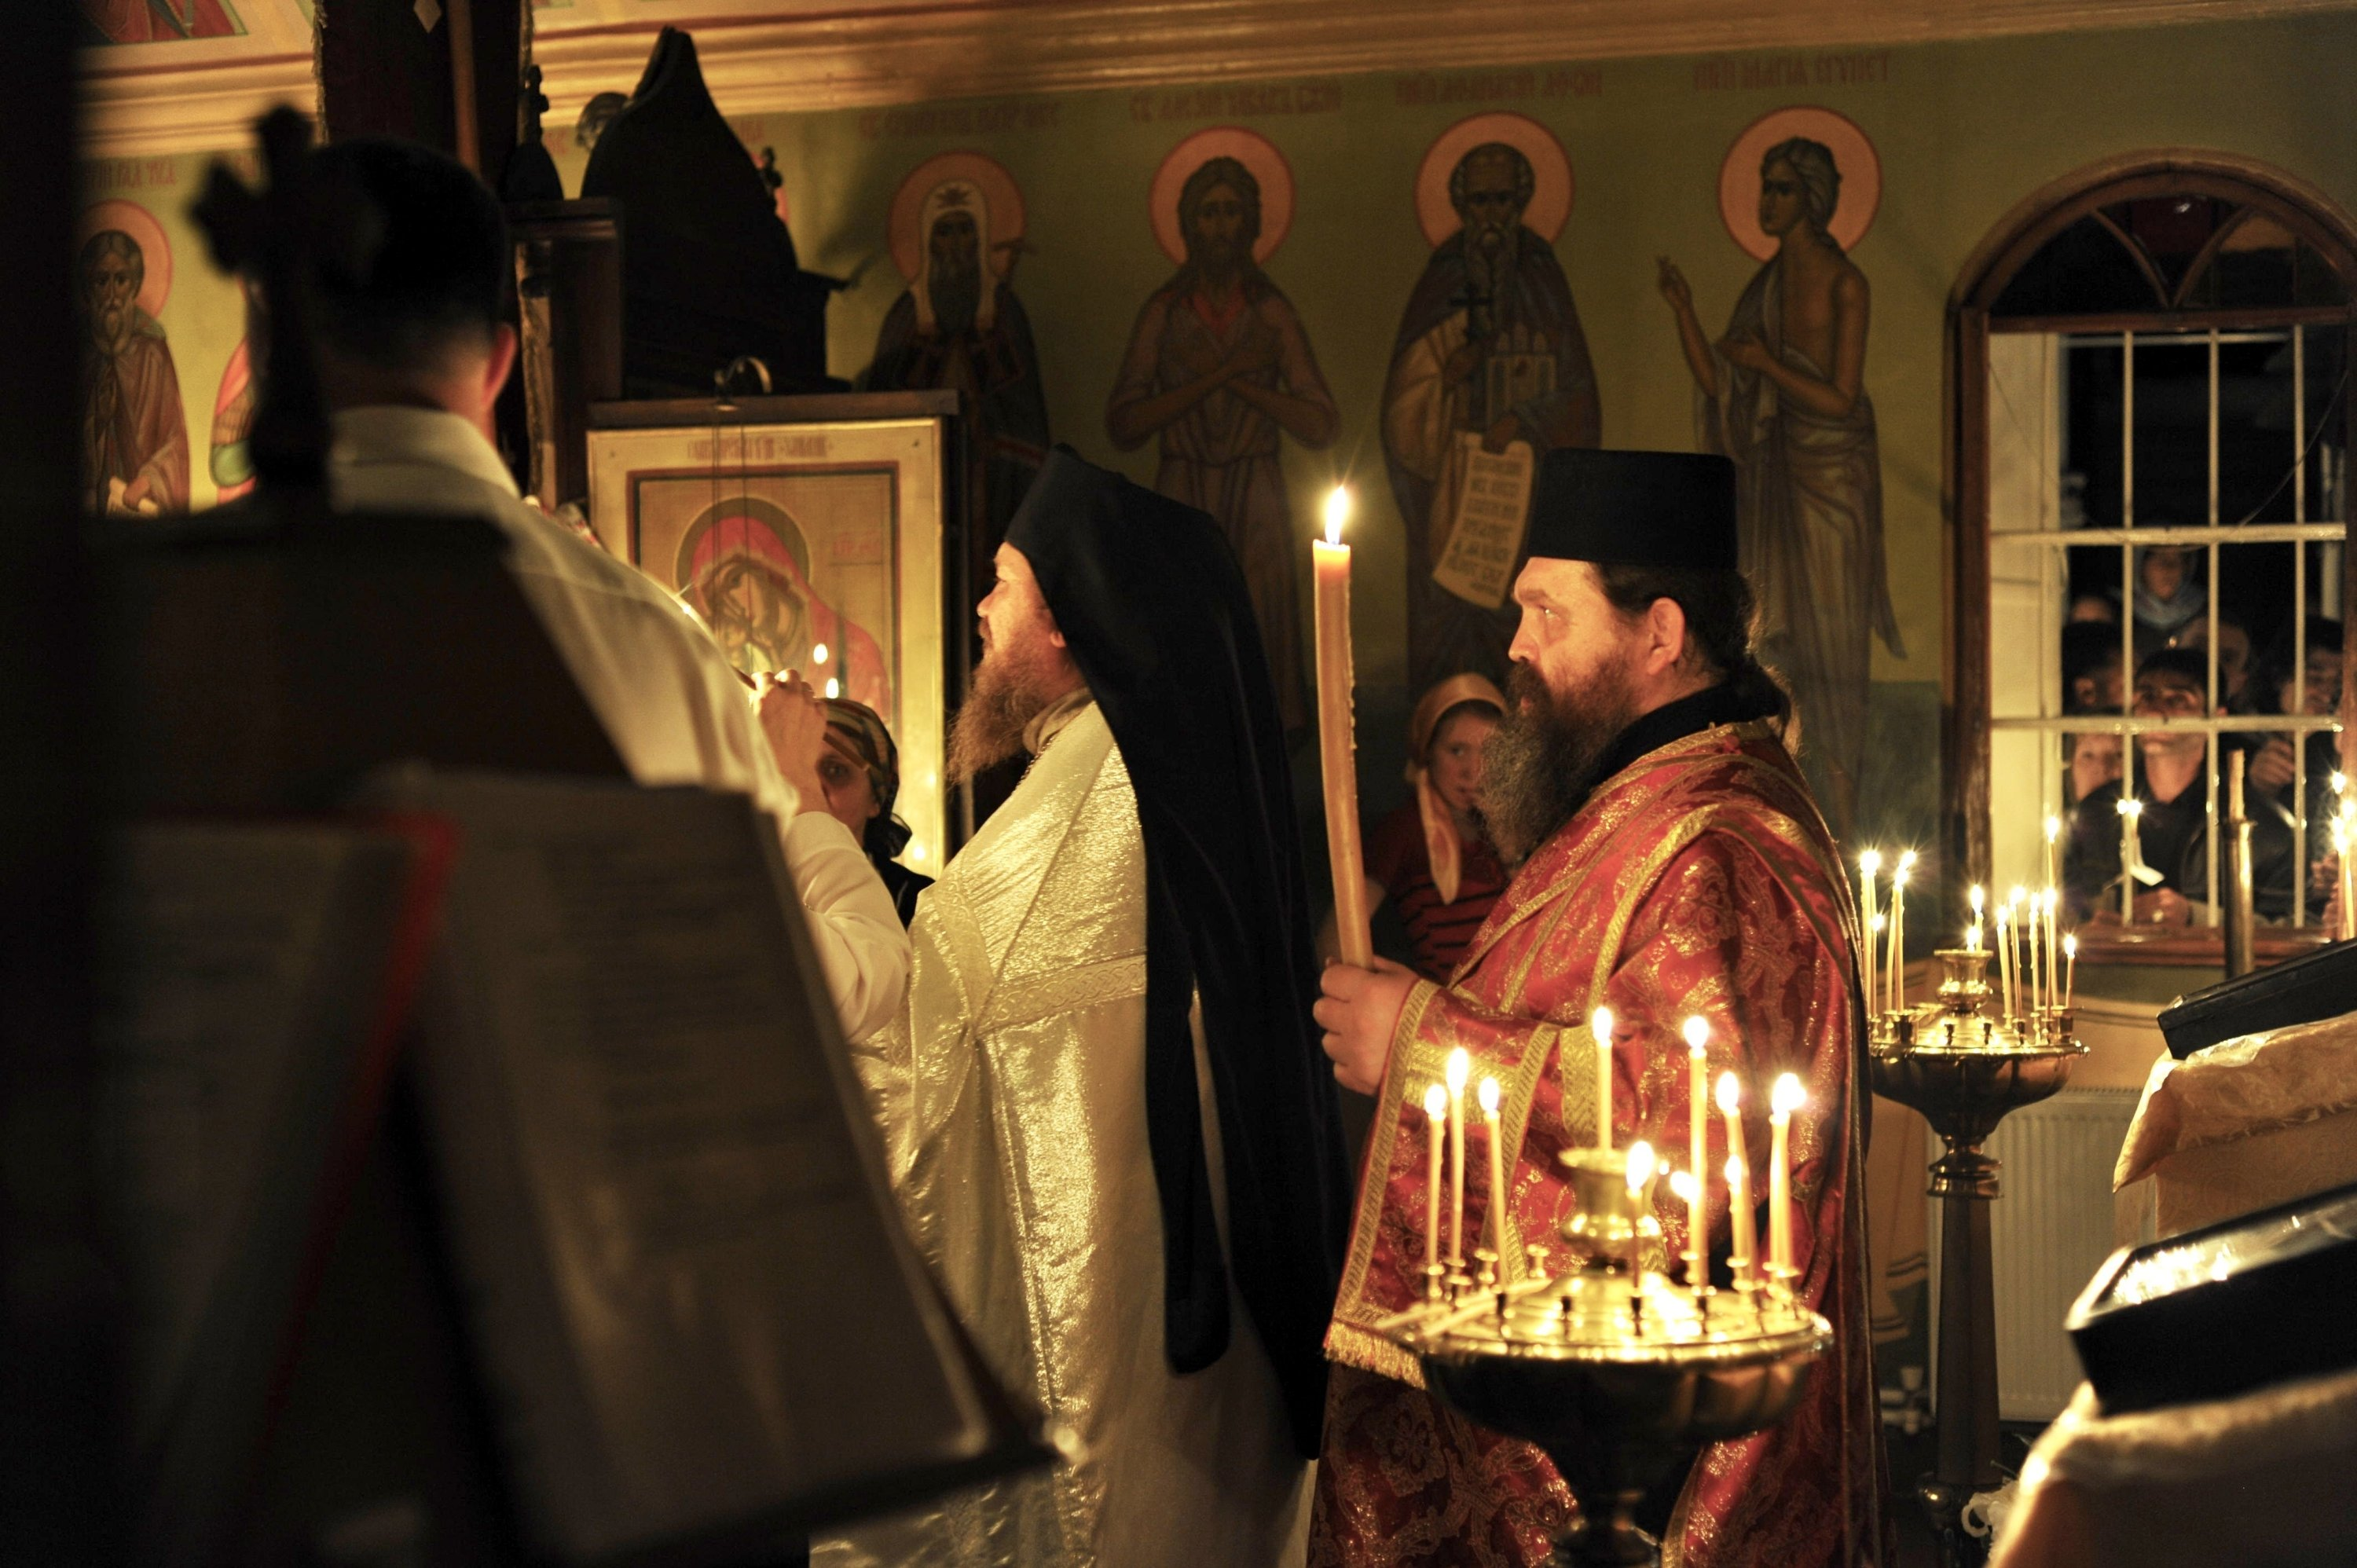 An Orthodox priest manages the Easter ceremony in the Russian Aya Panteleymon church in Karaköy, Istanbul, April 3, 2010. (Shutterstock)